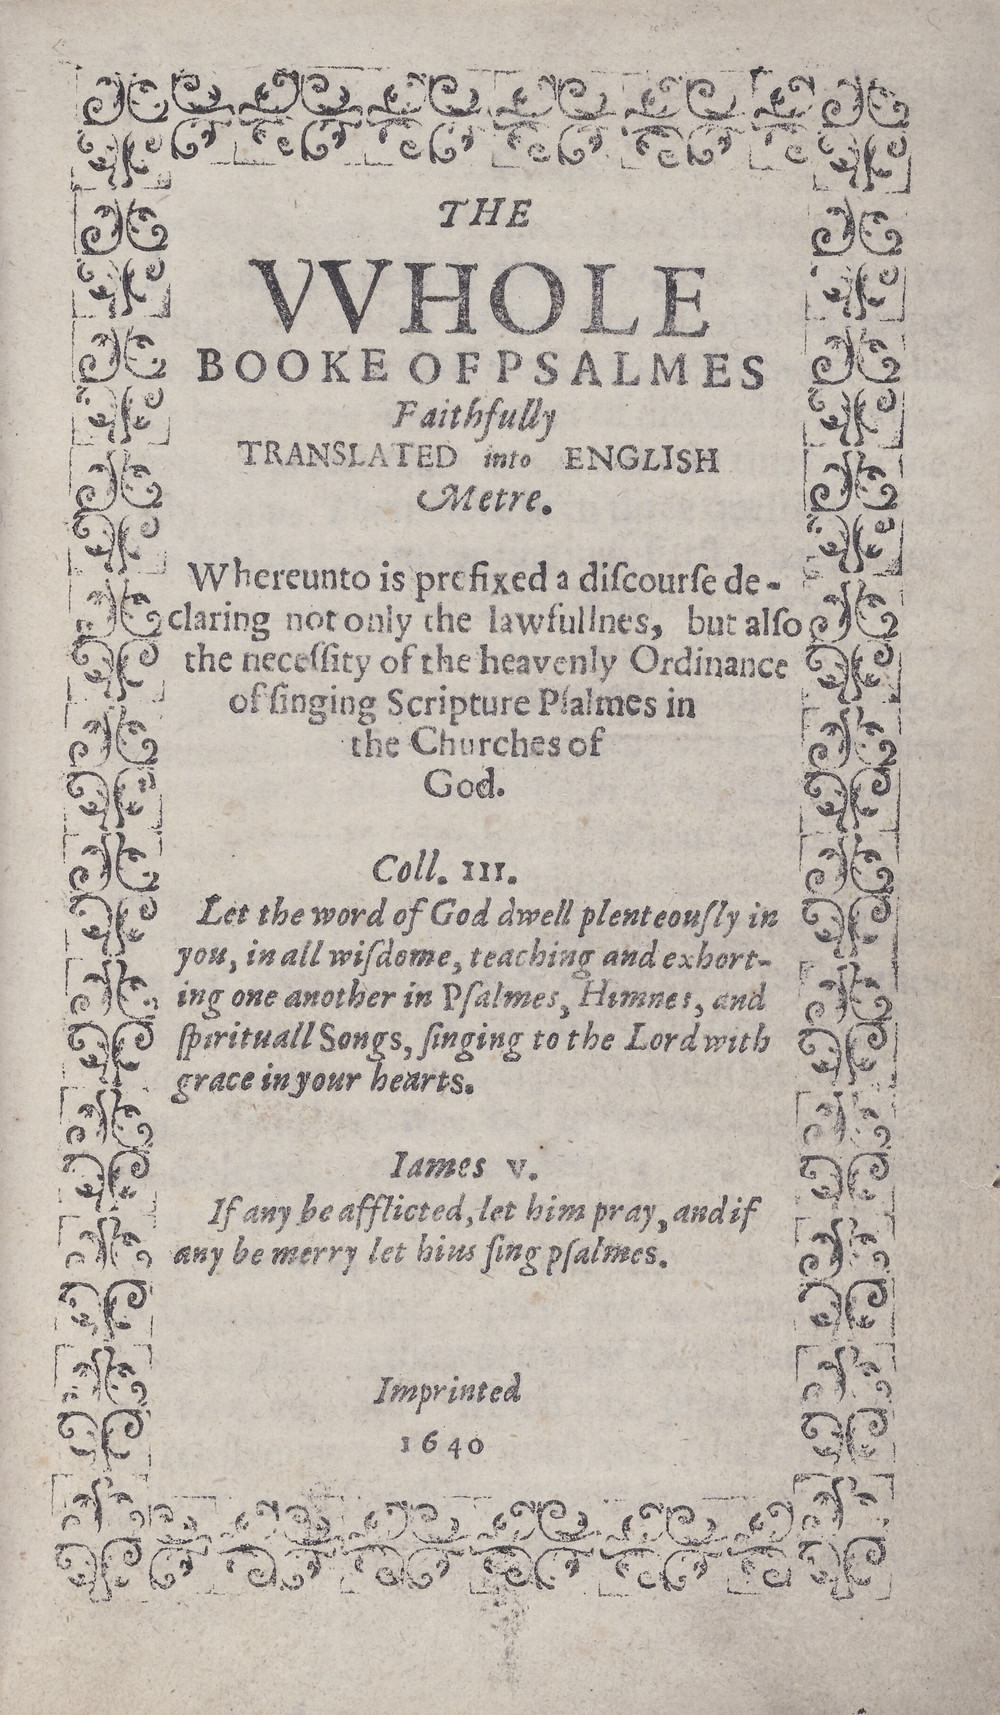 Titelpagina van The Whole Booke of Psalmes, 1640, beter bekend as het Bay Psalm Book.